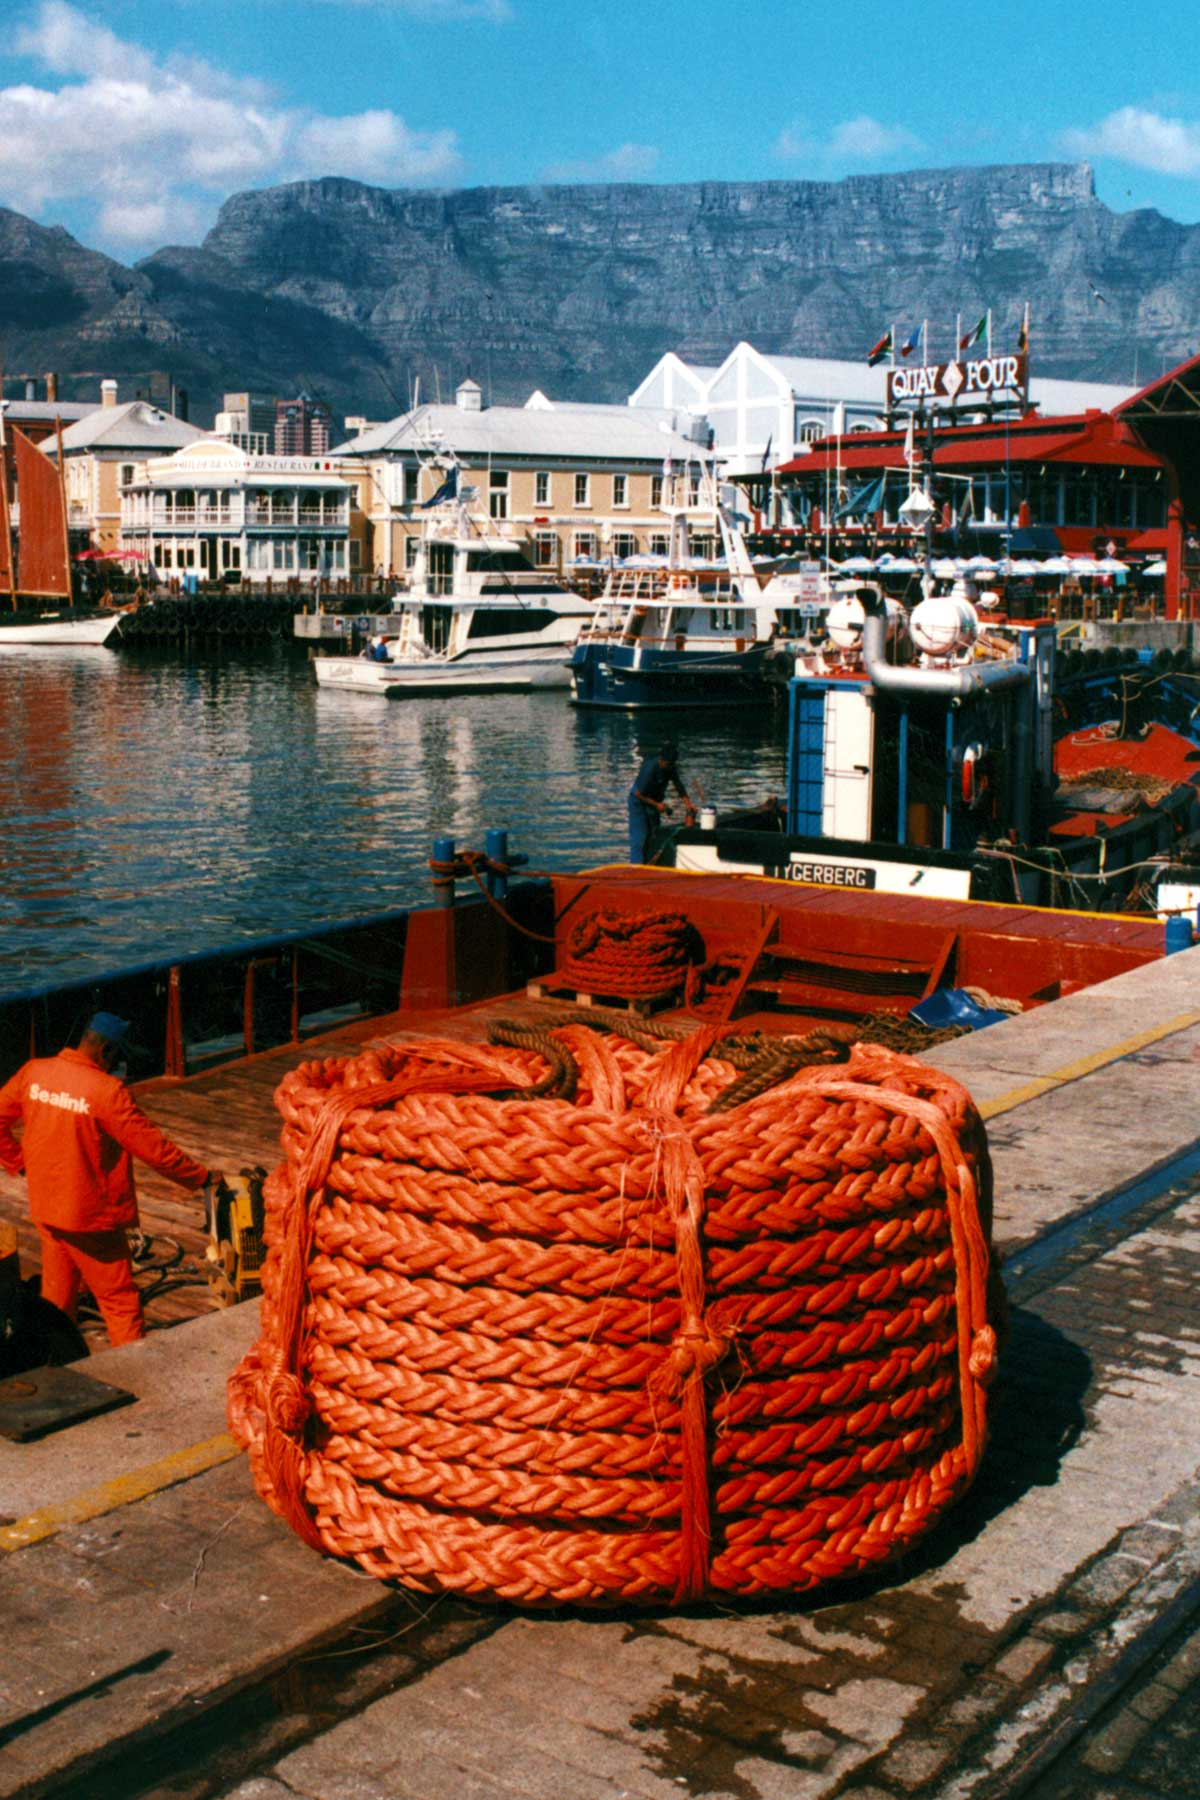 The Cape Town Waterfront - Steven Andrew Martin PhD - South Africa Study Abroad Photo Journal 1997